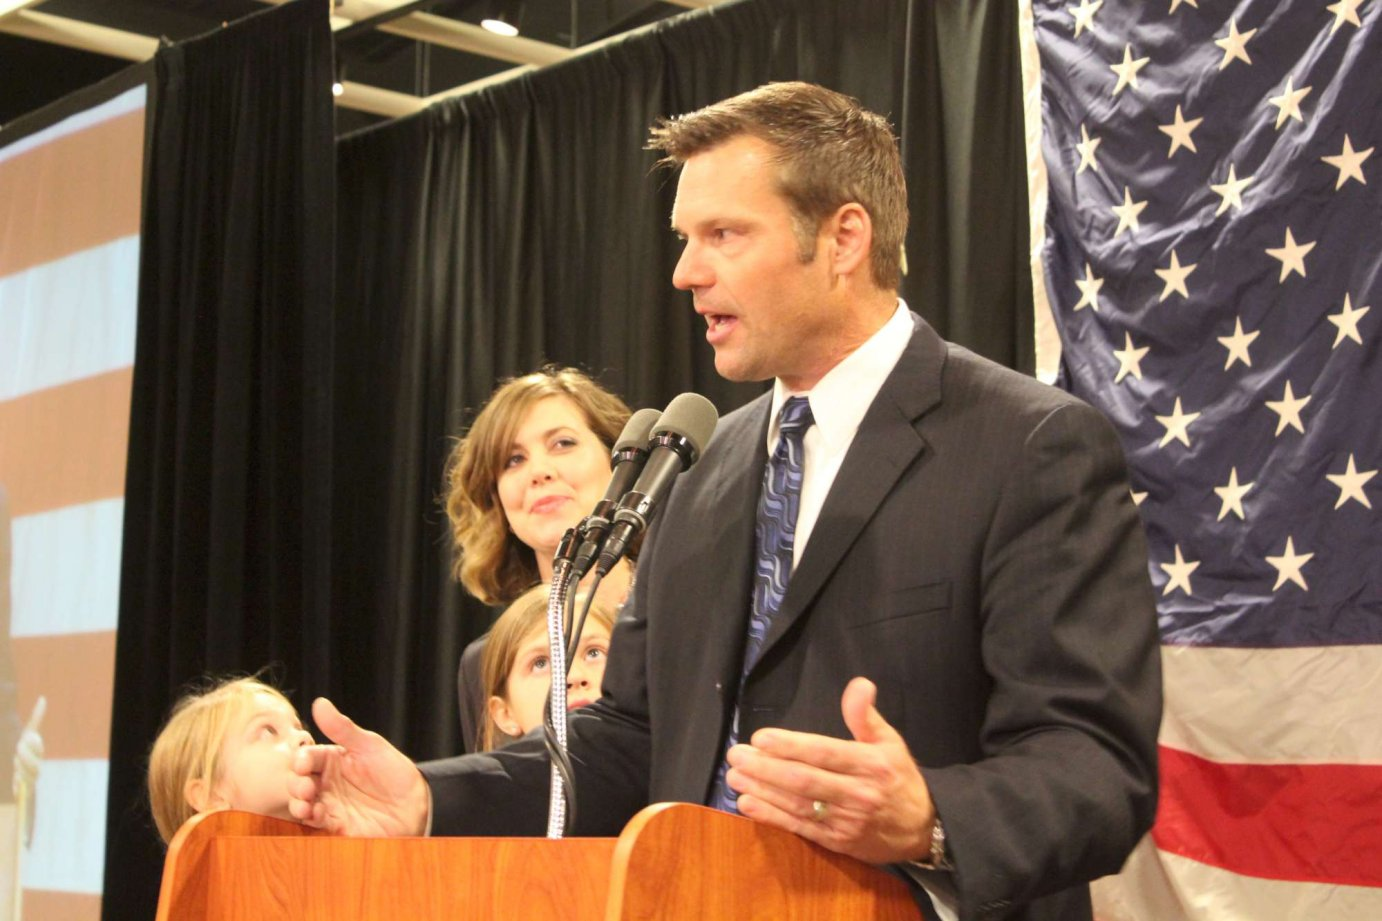 Kobach speaking on election night in 2014. (Photo by Stephen Koranda)